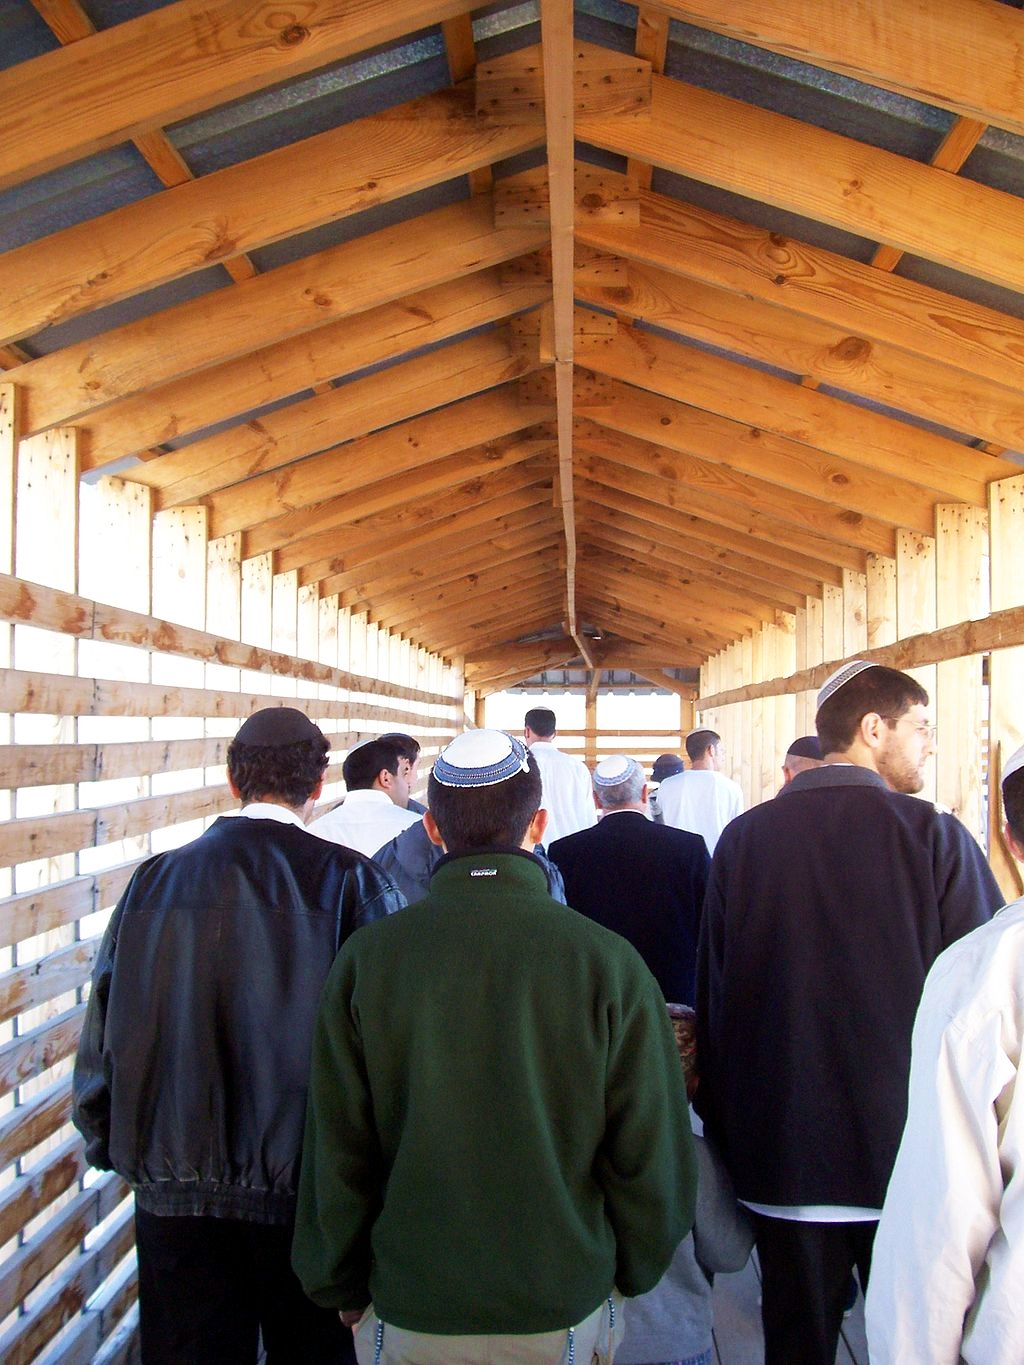 Jewish men enter the Temple Mount through the Mughrabi Gate